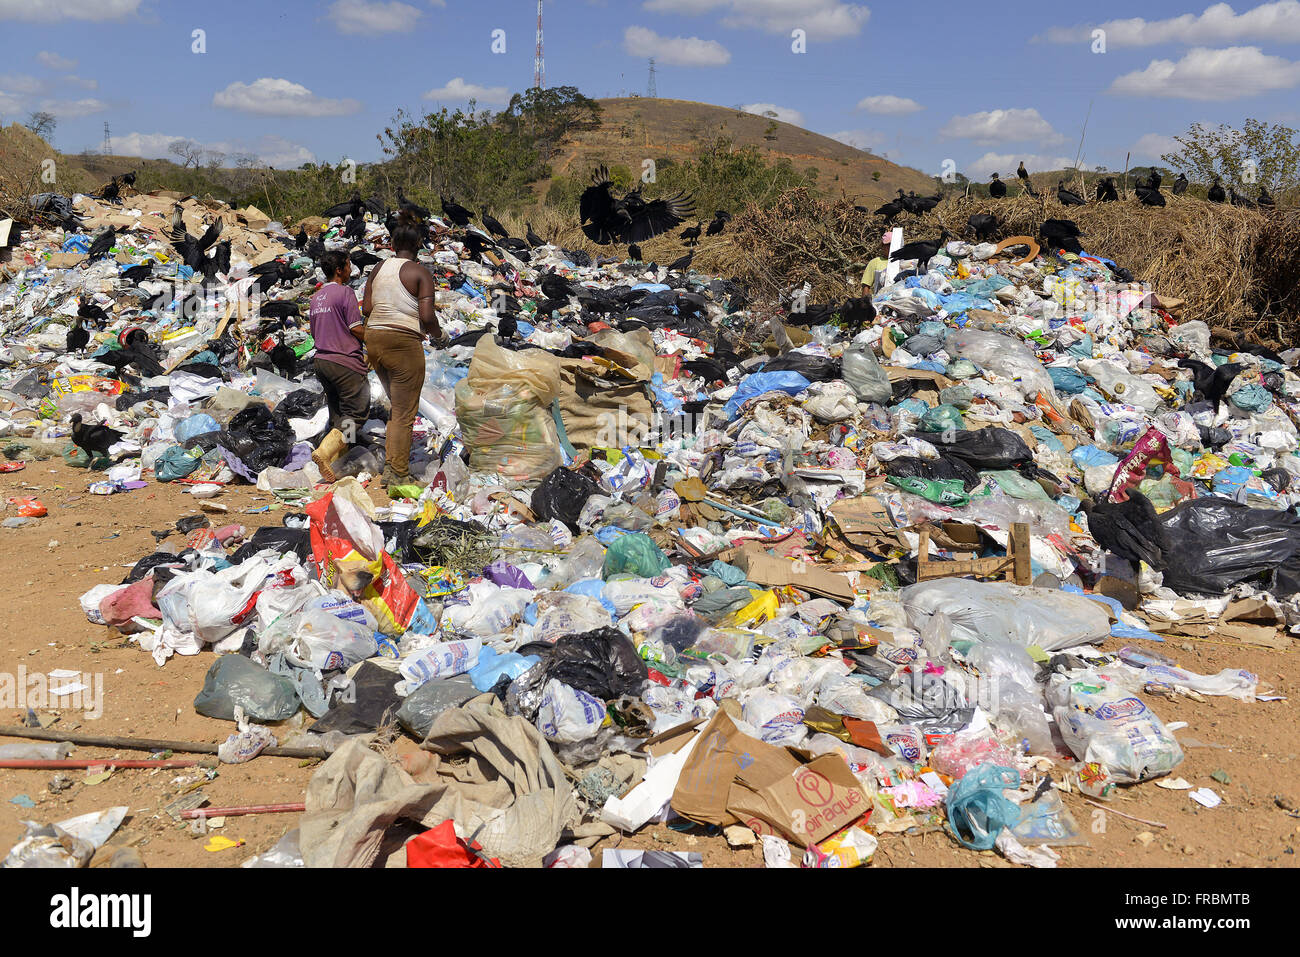 Pickers of recyclable garbage deposit in the open sky at km 17 of the BR-040 highway Washington Luiz - Stock Image